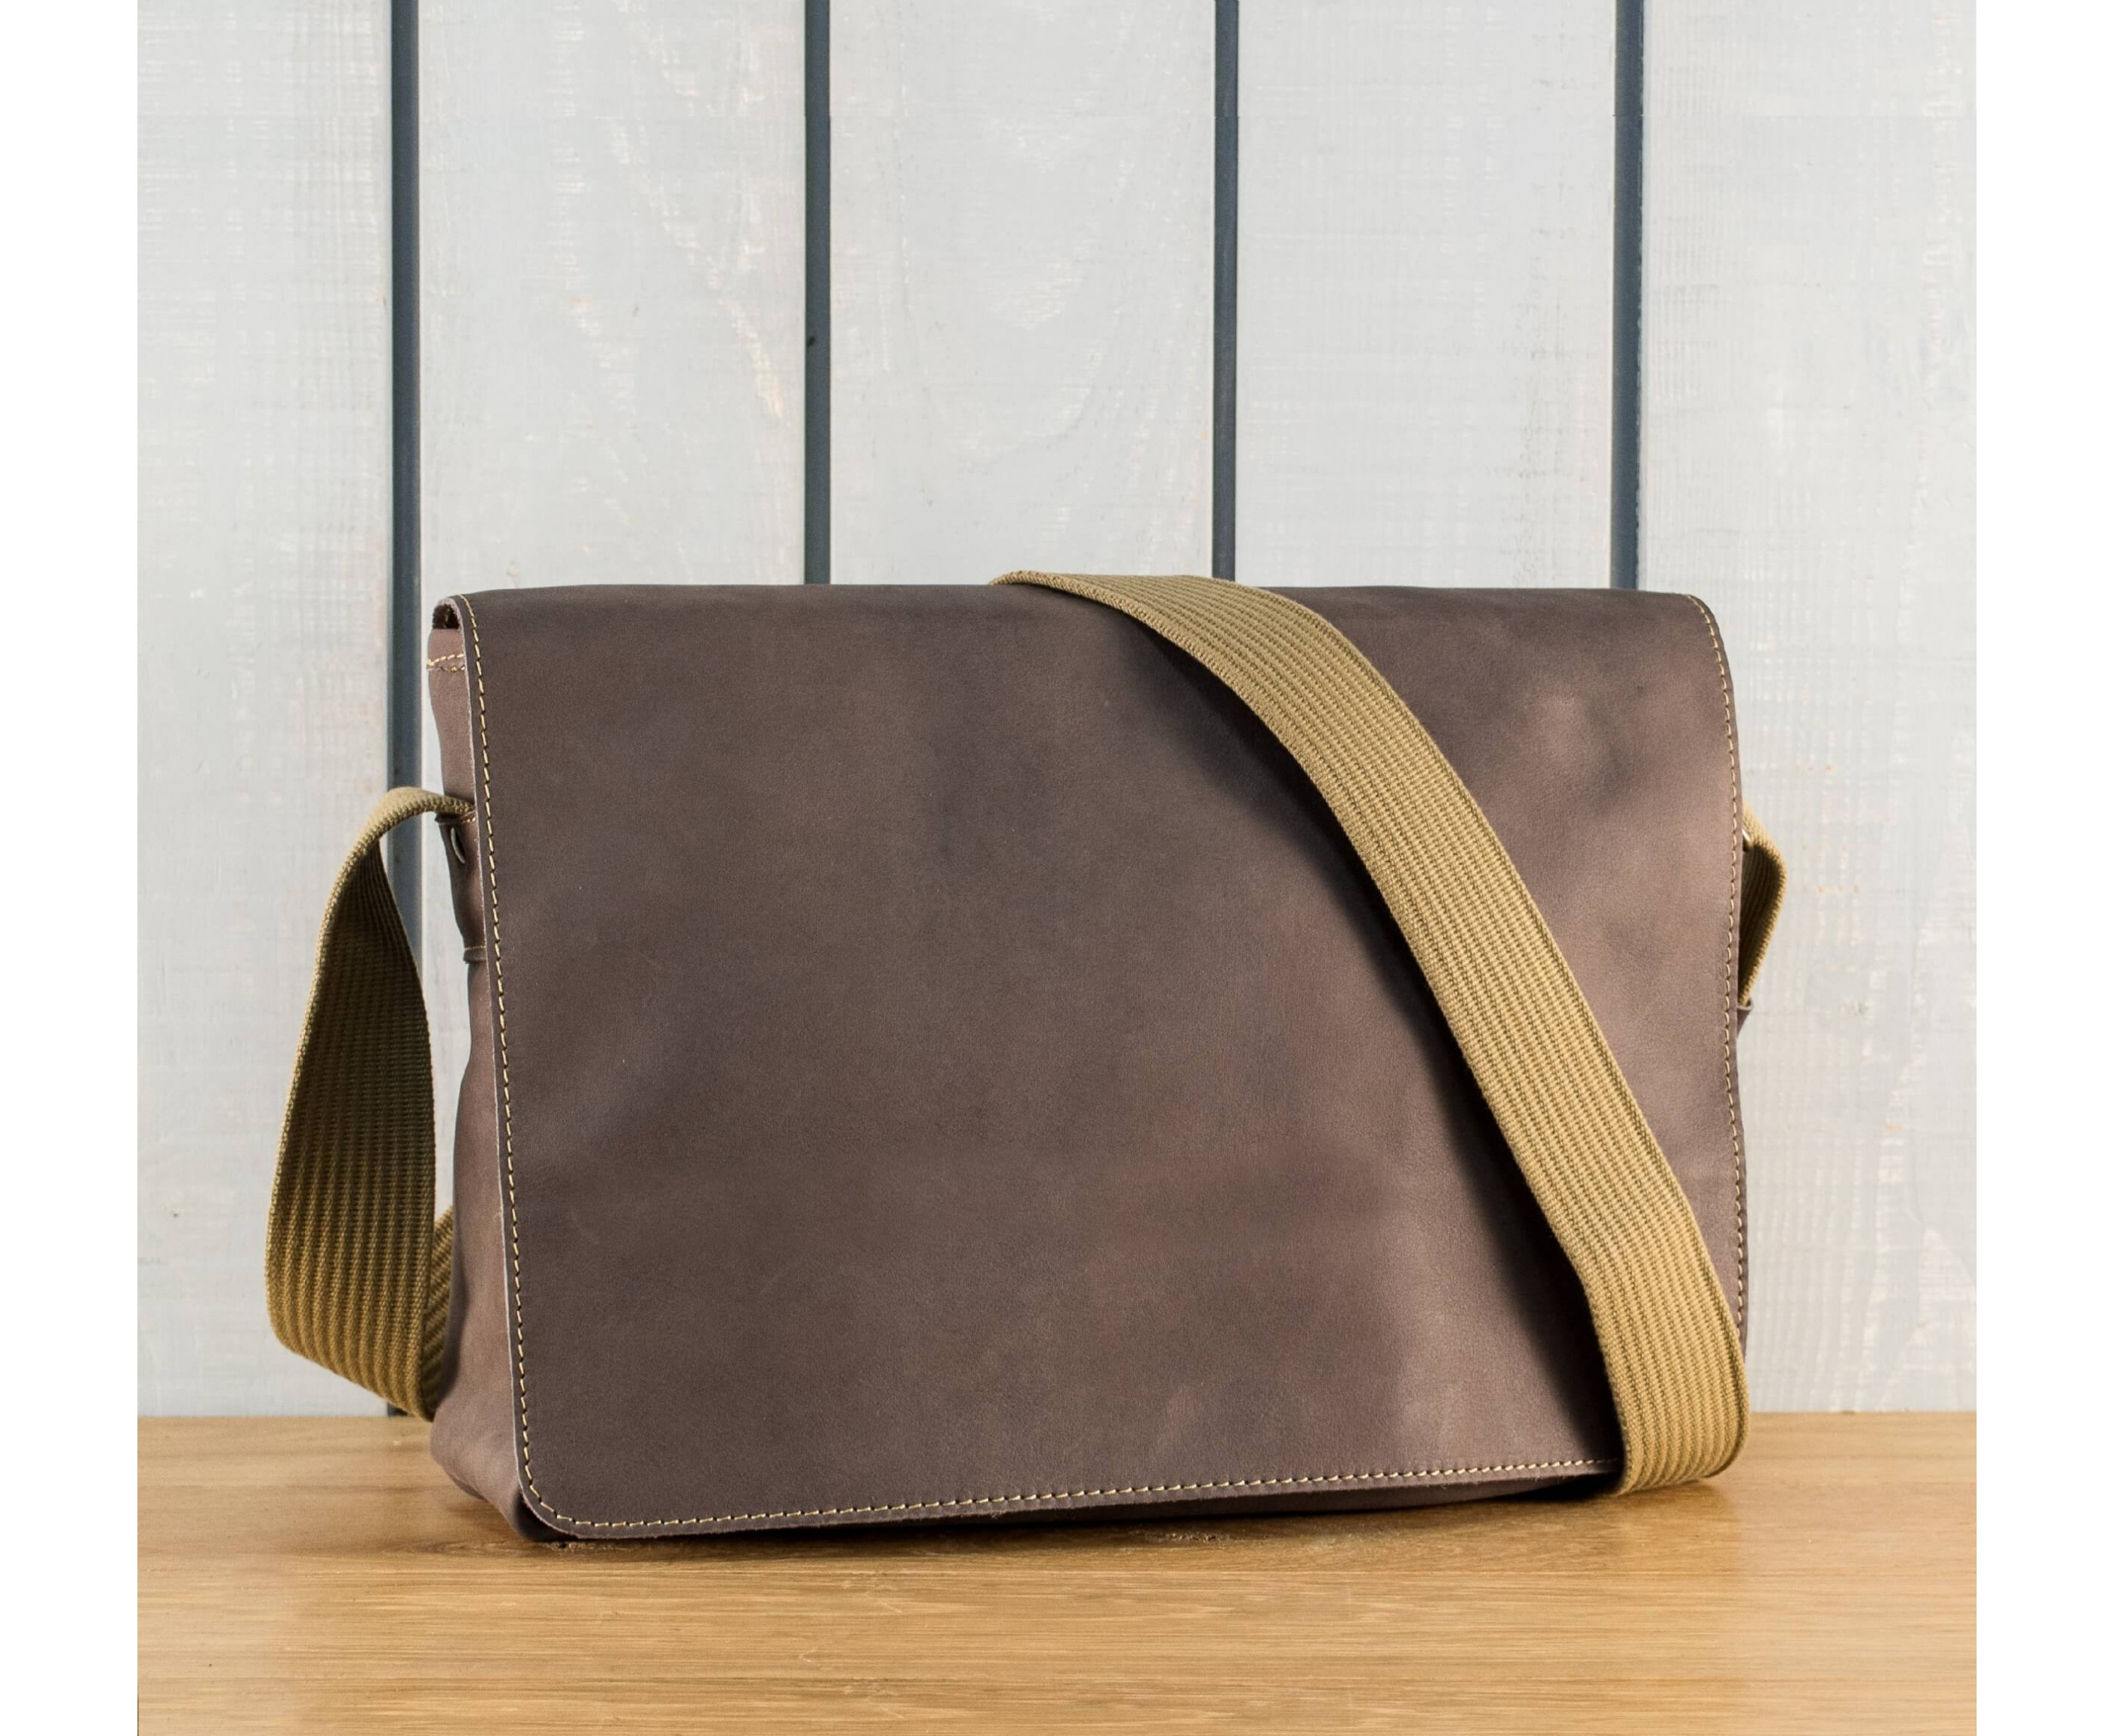 BESACE | MUSETTE BRUNE